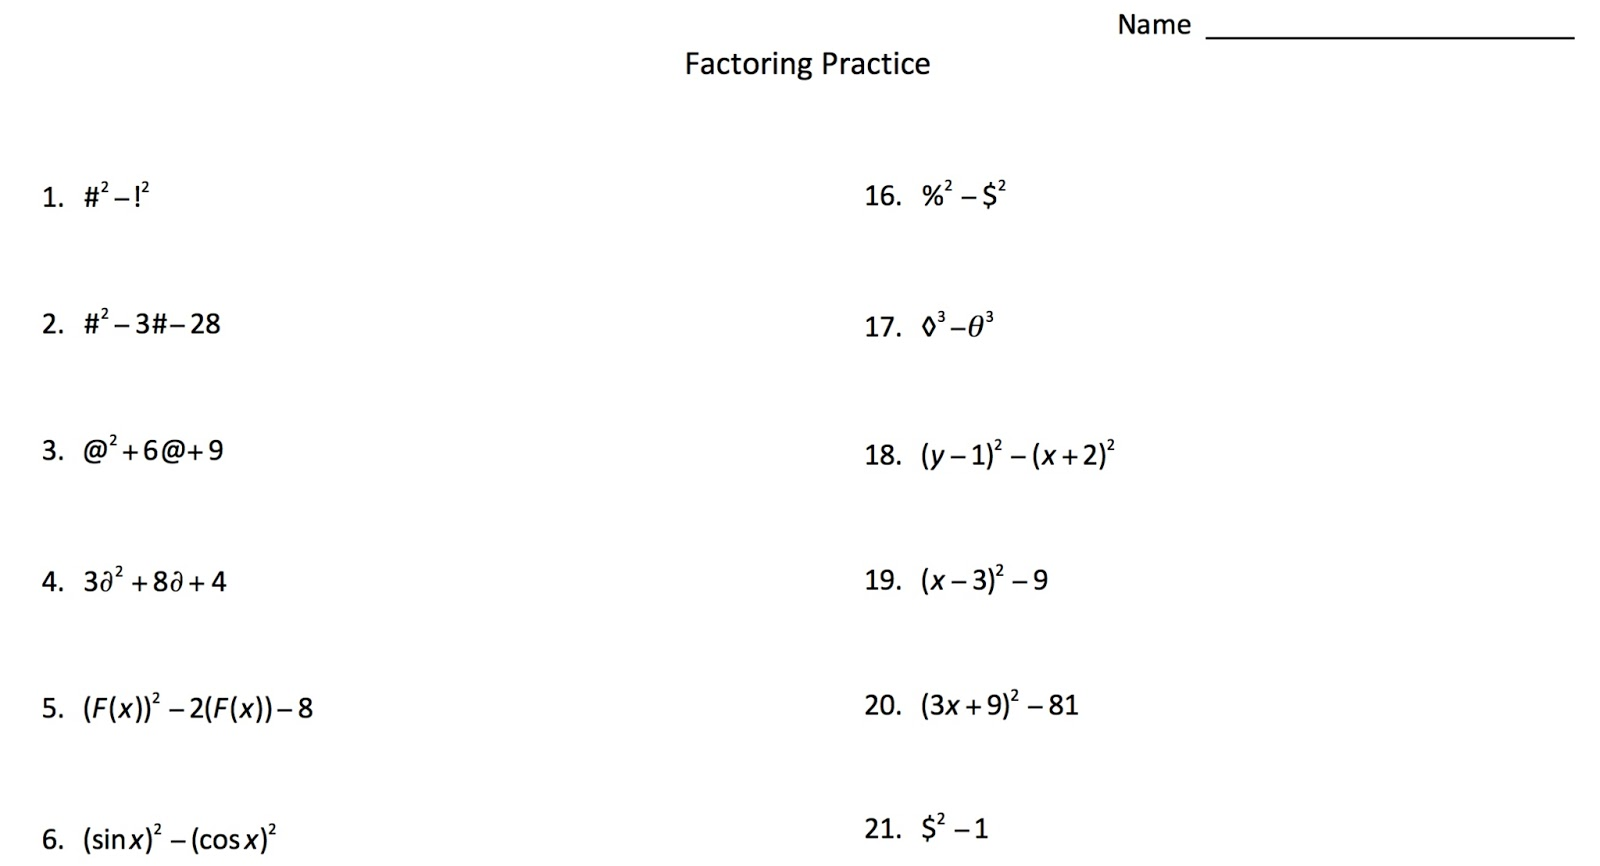 Factoring with Symbols - using symbols instead of numbers to help ...